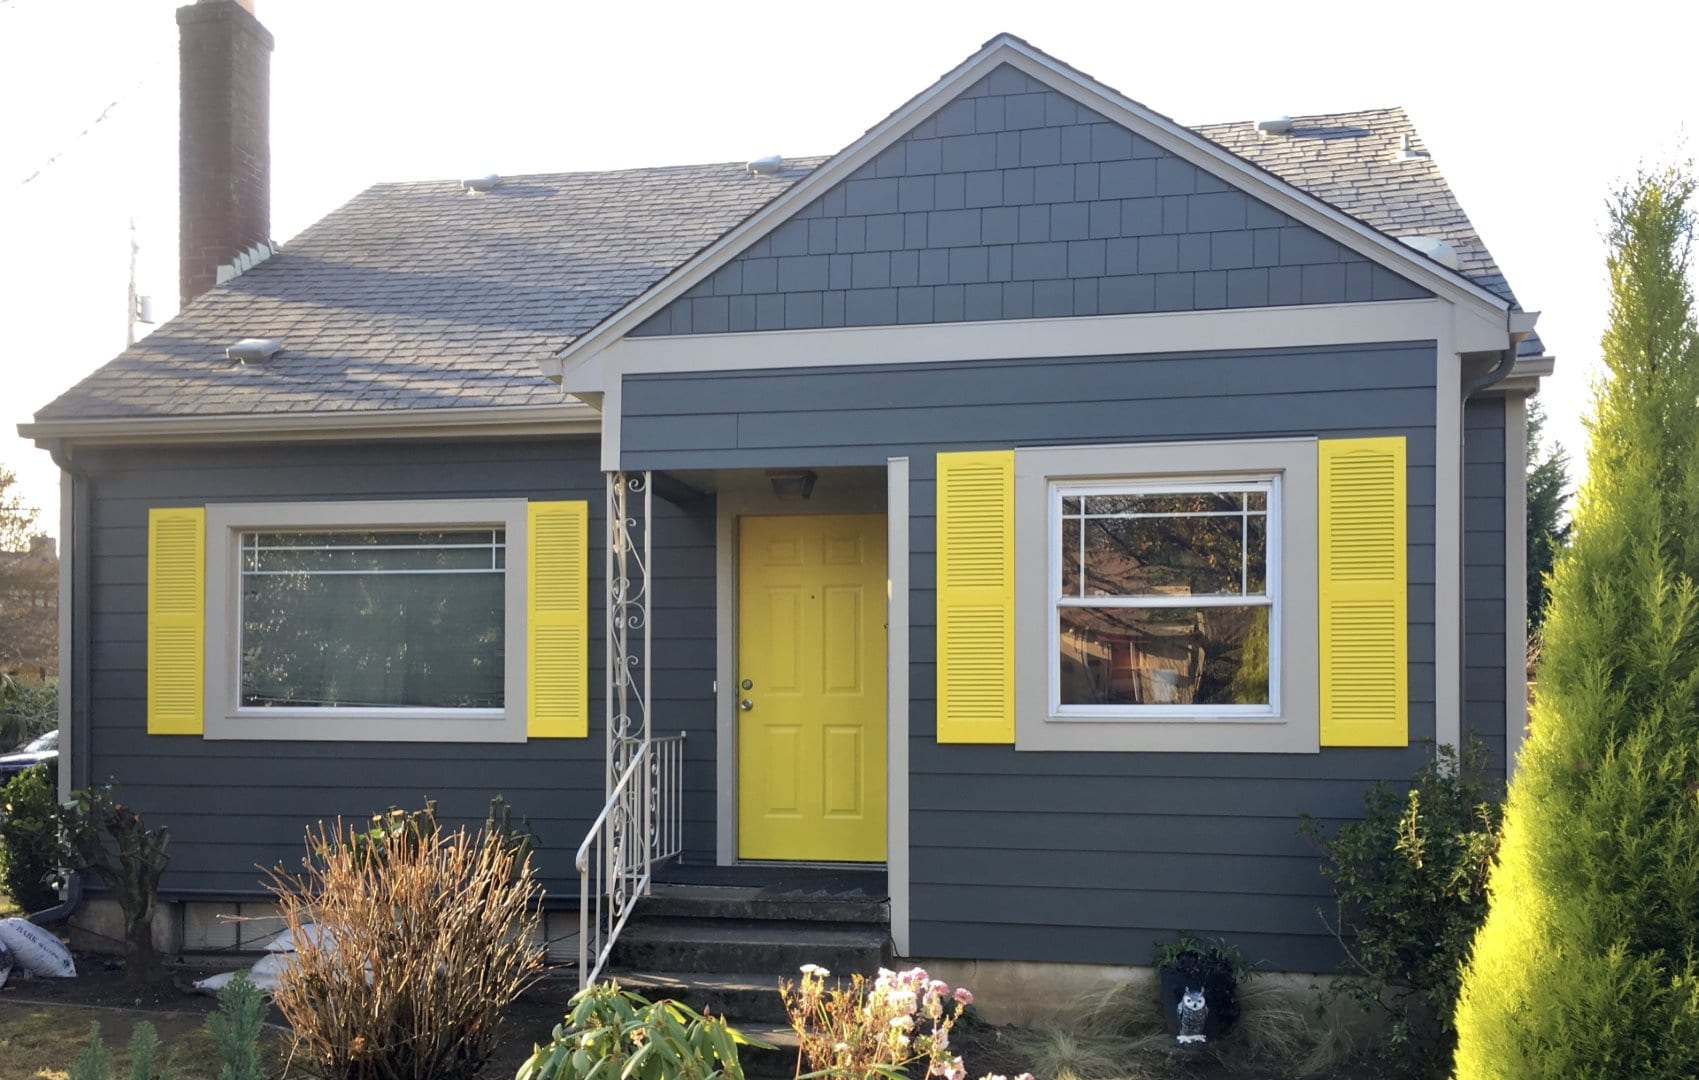 After - James Hardie Smooth Lap Siding with Hardie Shake, Belly Band, Shutters & Sherwin Williams Exterior Paint